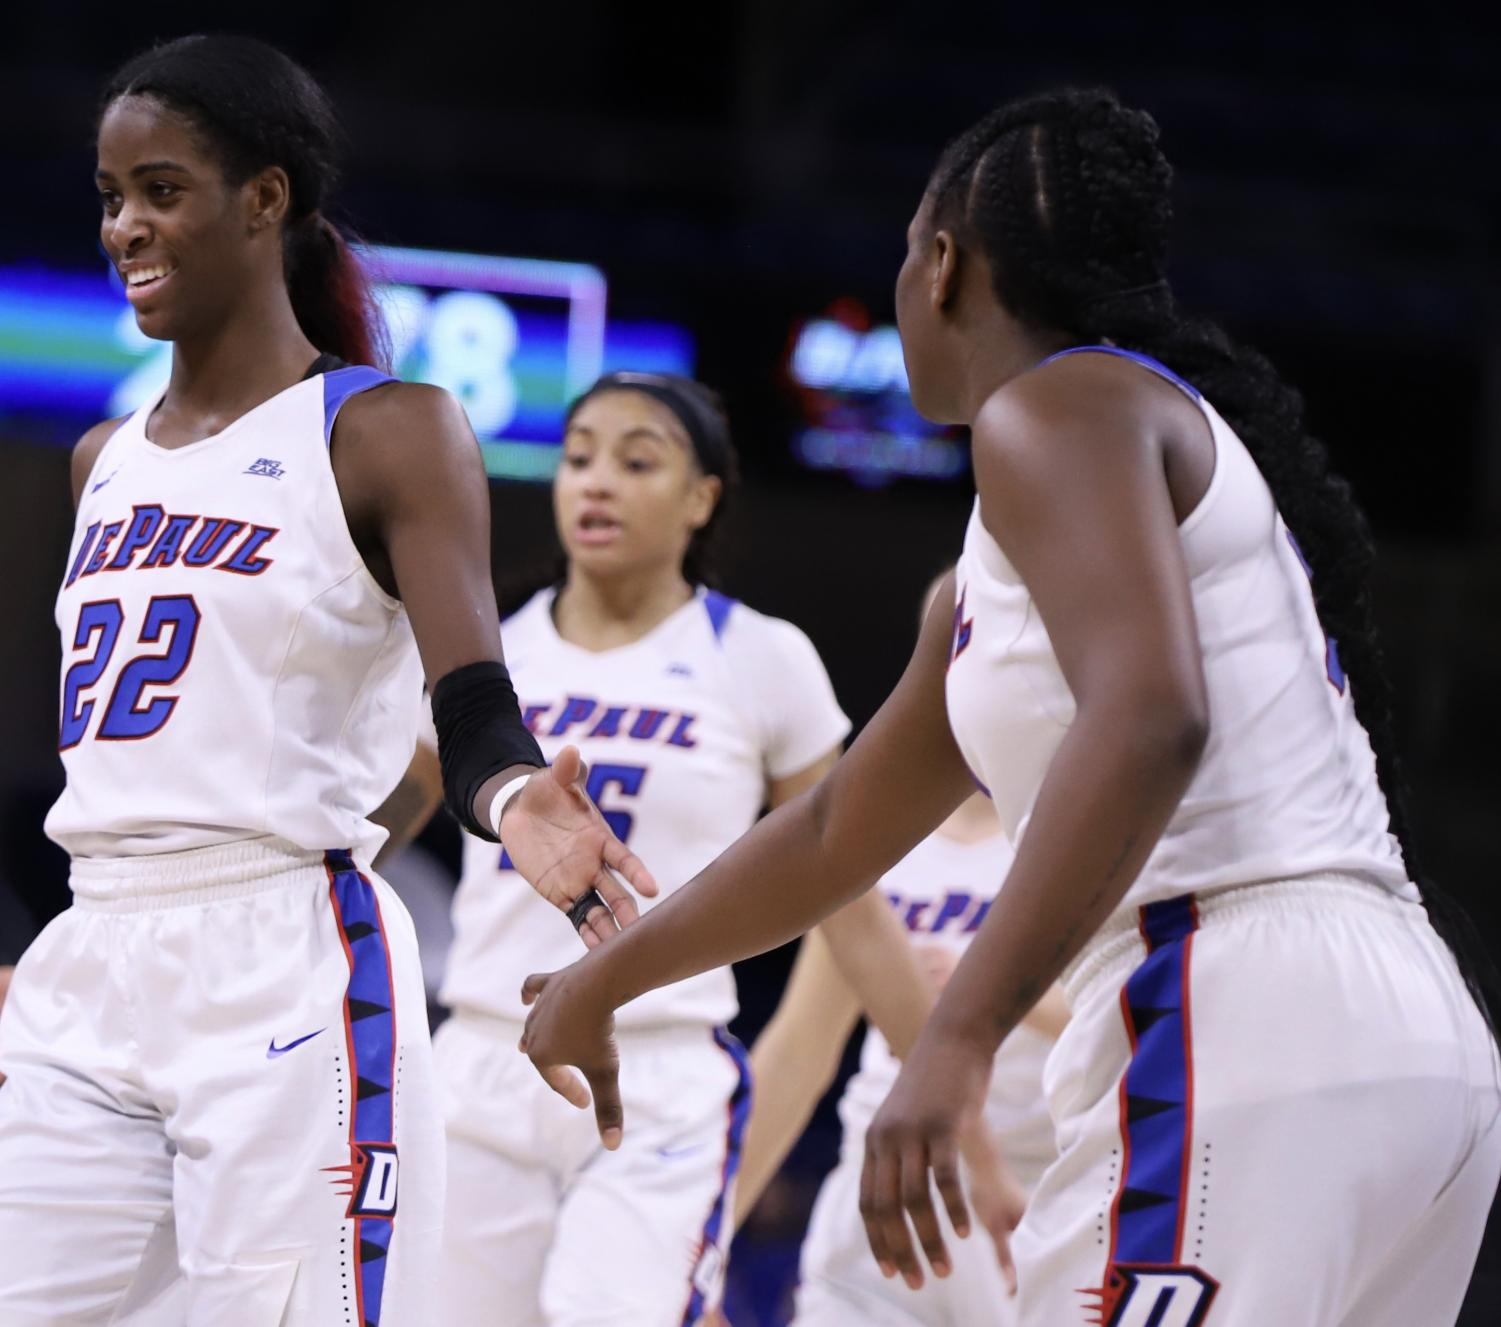 DePaul's Chante Stonewall, Mart'e Grays and Ashton Millender celebrate a play Monday night at Wintrust Arena. The Blue Demons advanced to the Big East Tournament championship game with an 80-69 victory over Creighton and will face Marquette for the third straight season. Alexa Sandler | The DePaulia